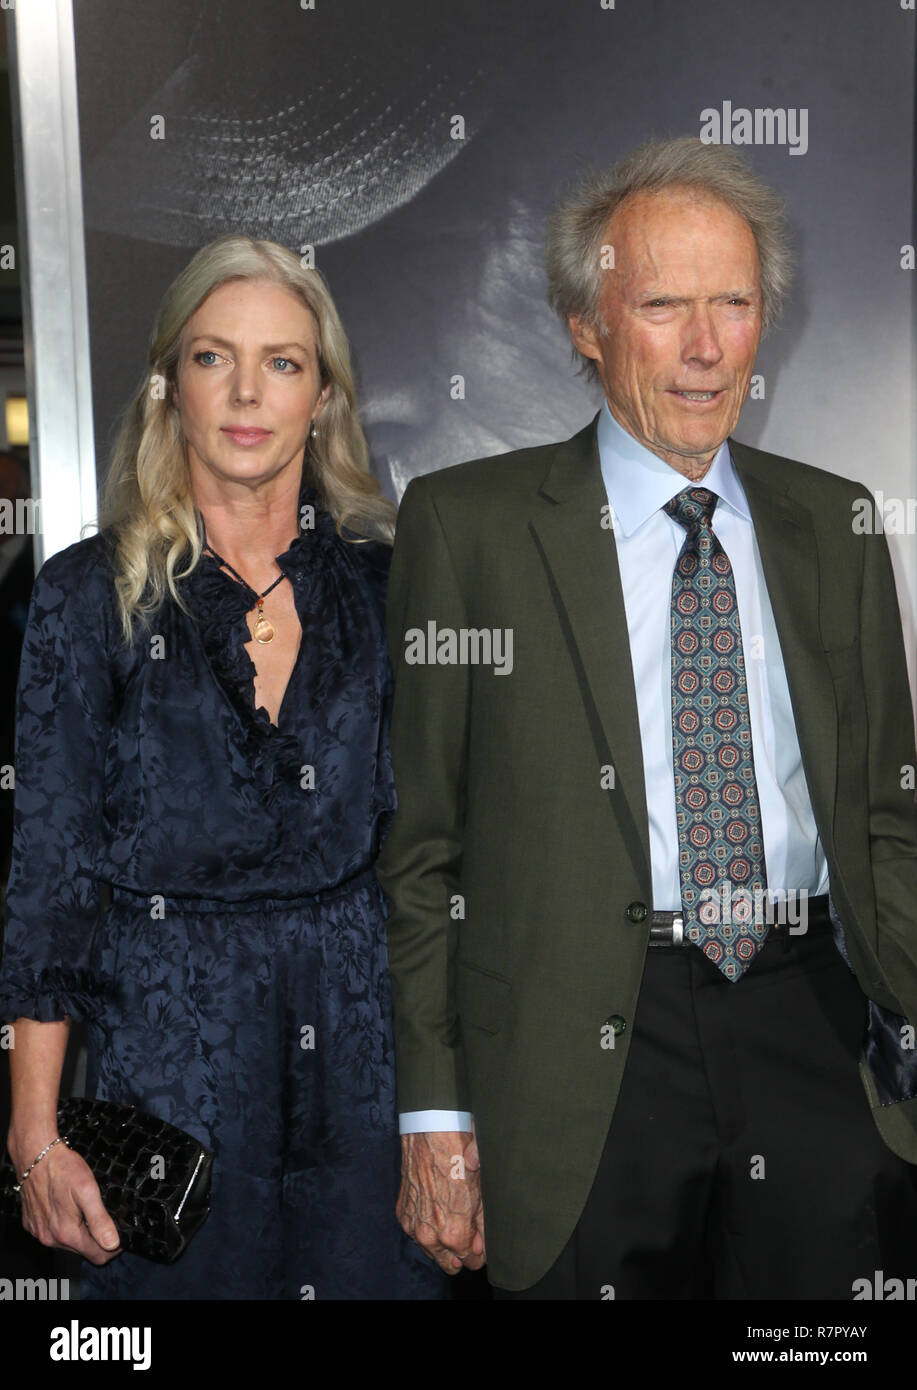 Westwood, California, USA. 10th Dec, 2018. Christina Sandera, Clint Eastwood, at the world premiere of The Mule at the Regency Village Theatre in Westwood, California on December 10, 2018. Credit: Faye Sadou/Media Punch/Alamy Live News Stock Photo